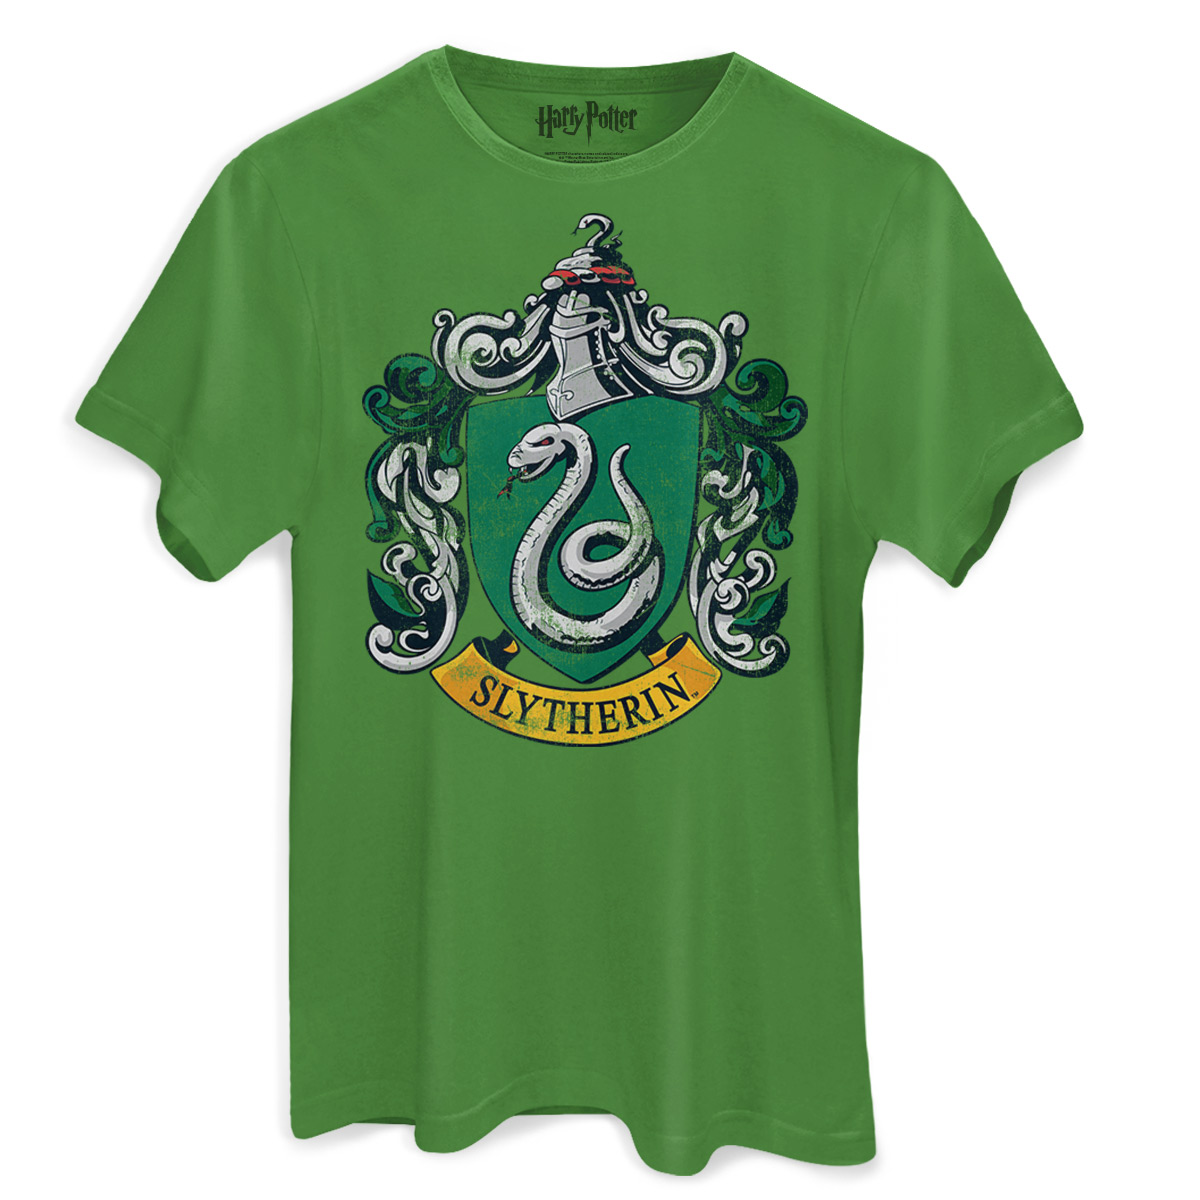 Camiseta Masculina Harry Potter Slytherin